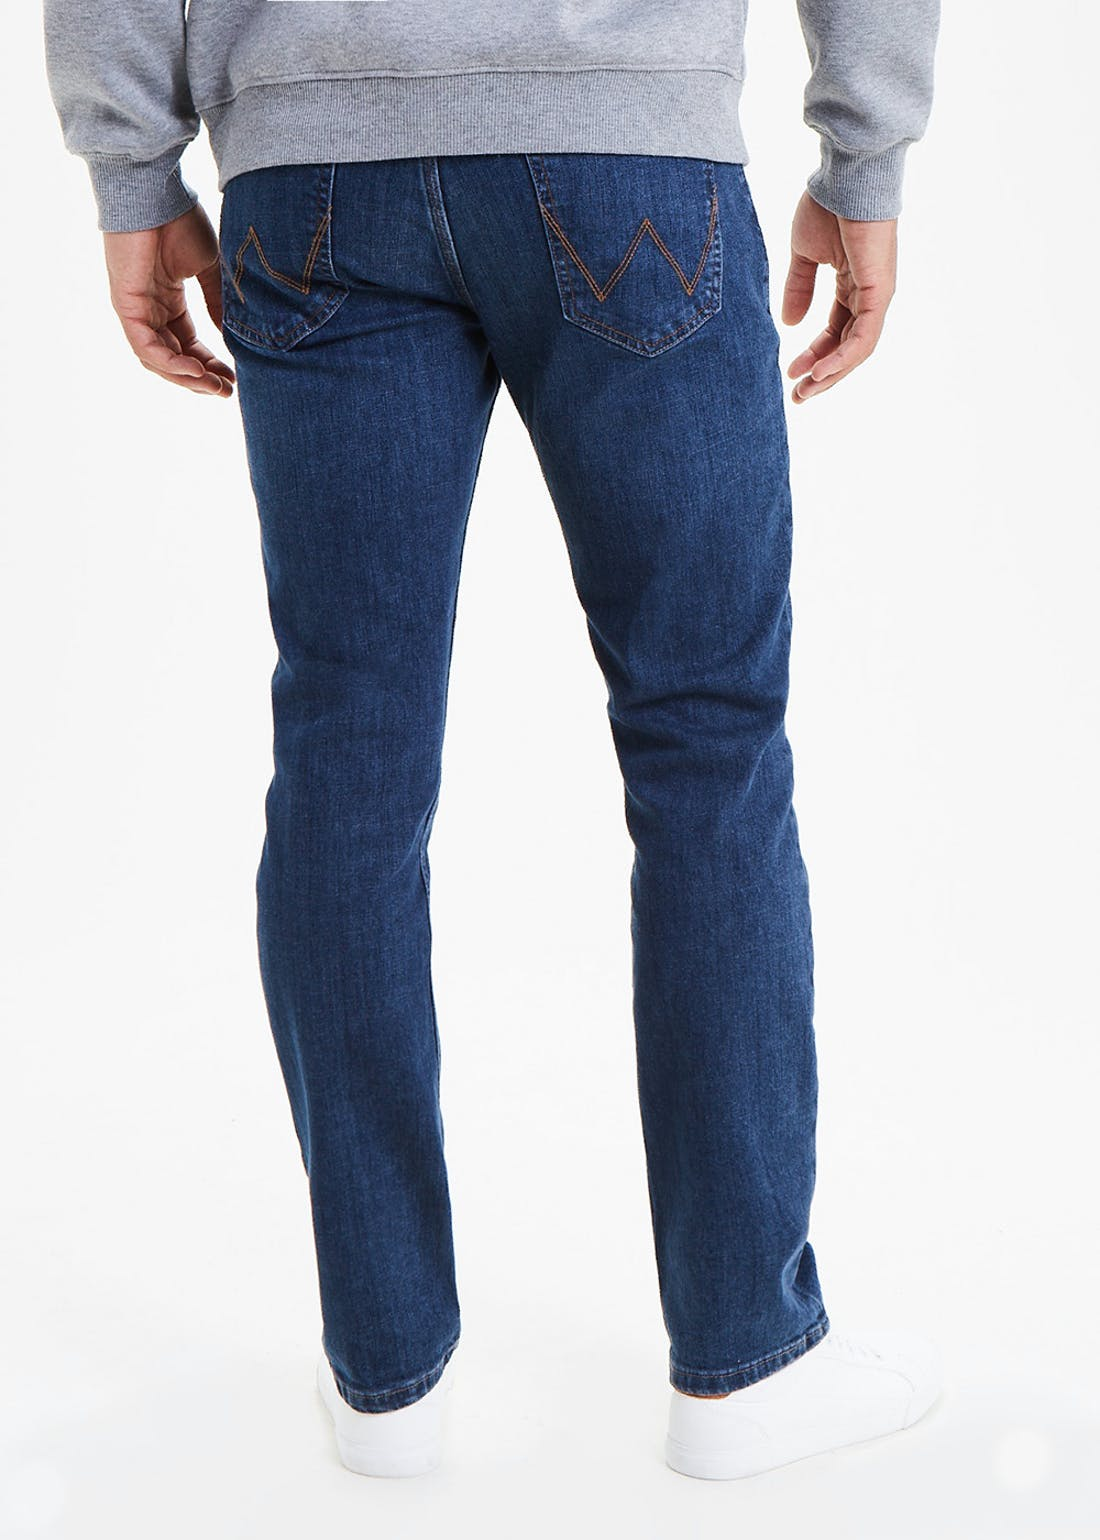 Wrangler Stretch Fit Jeans